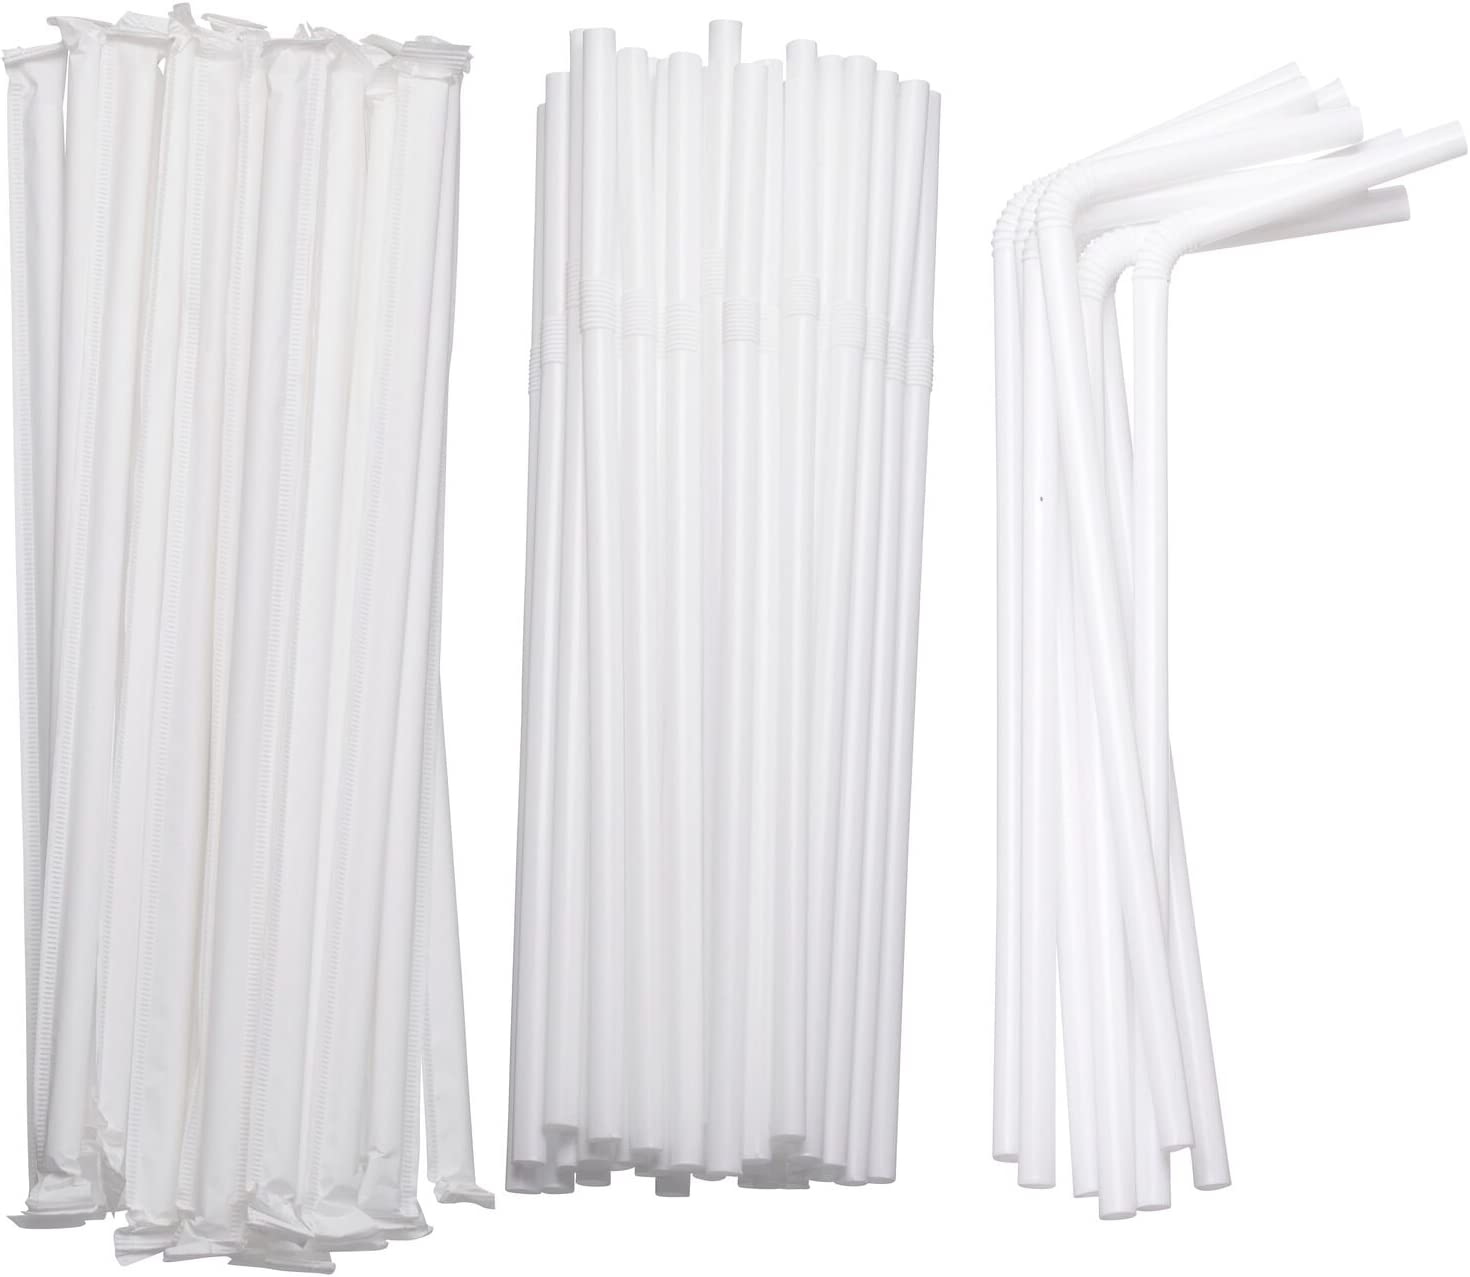 Flexible Drinking Straws in Bulk | 7 3/4 Inches Long Straws for Cold Hot Drinks, Parties Individually Wrapped and Disposable, White in Color (2 Packs/800 Straws)